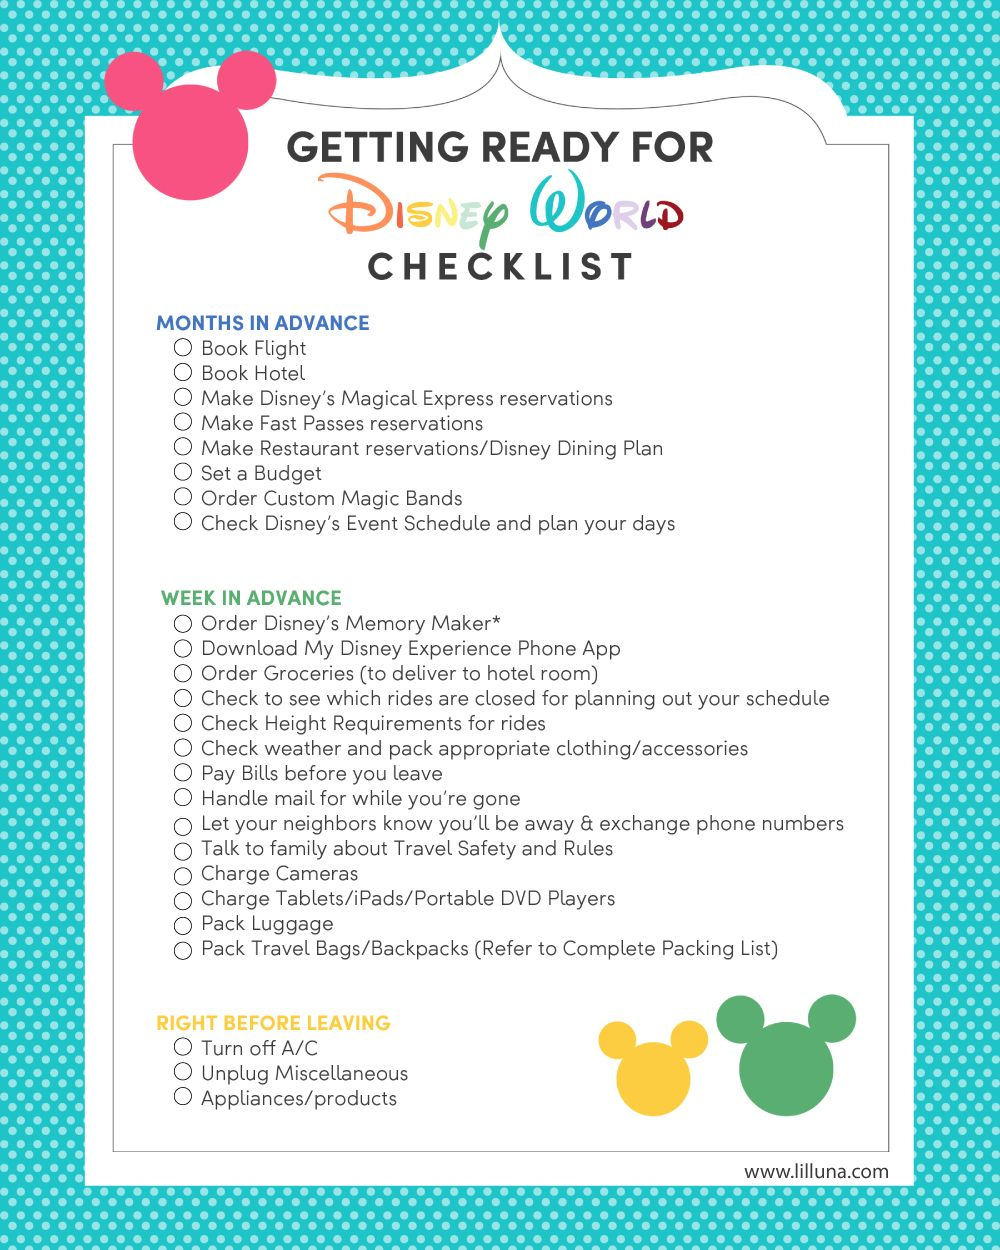 HOW TO MAKE THE MOST OF YOUR DISNEY WORLD VACATION | Vacation ...